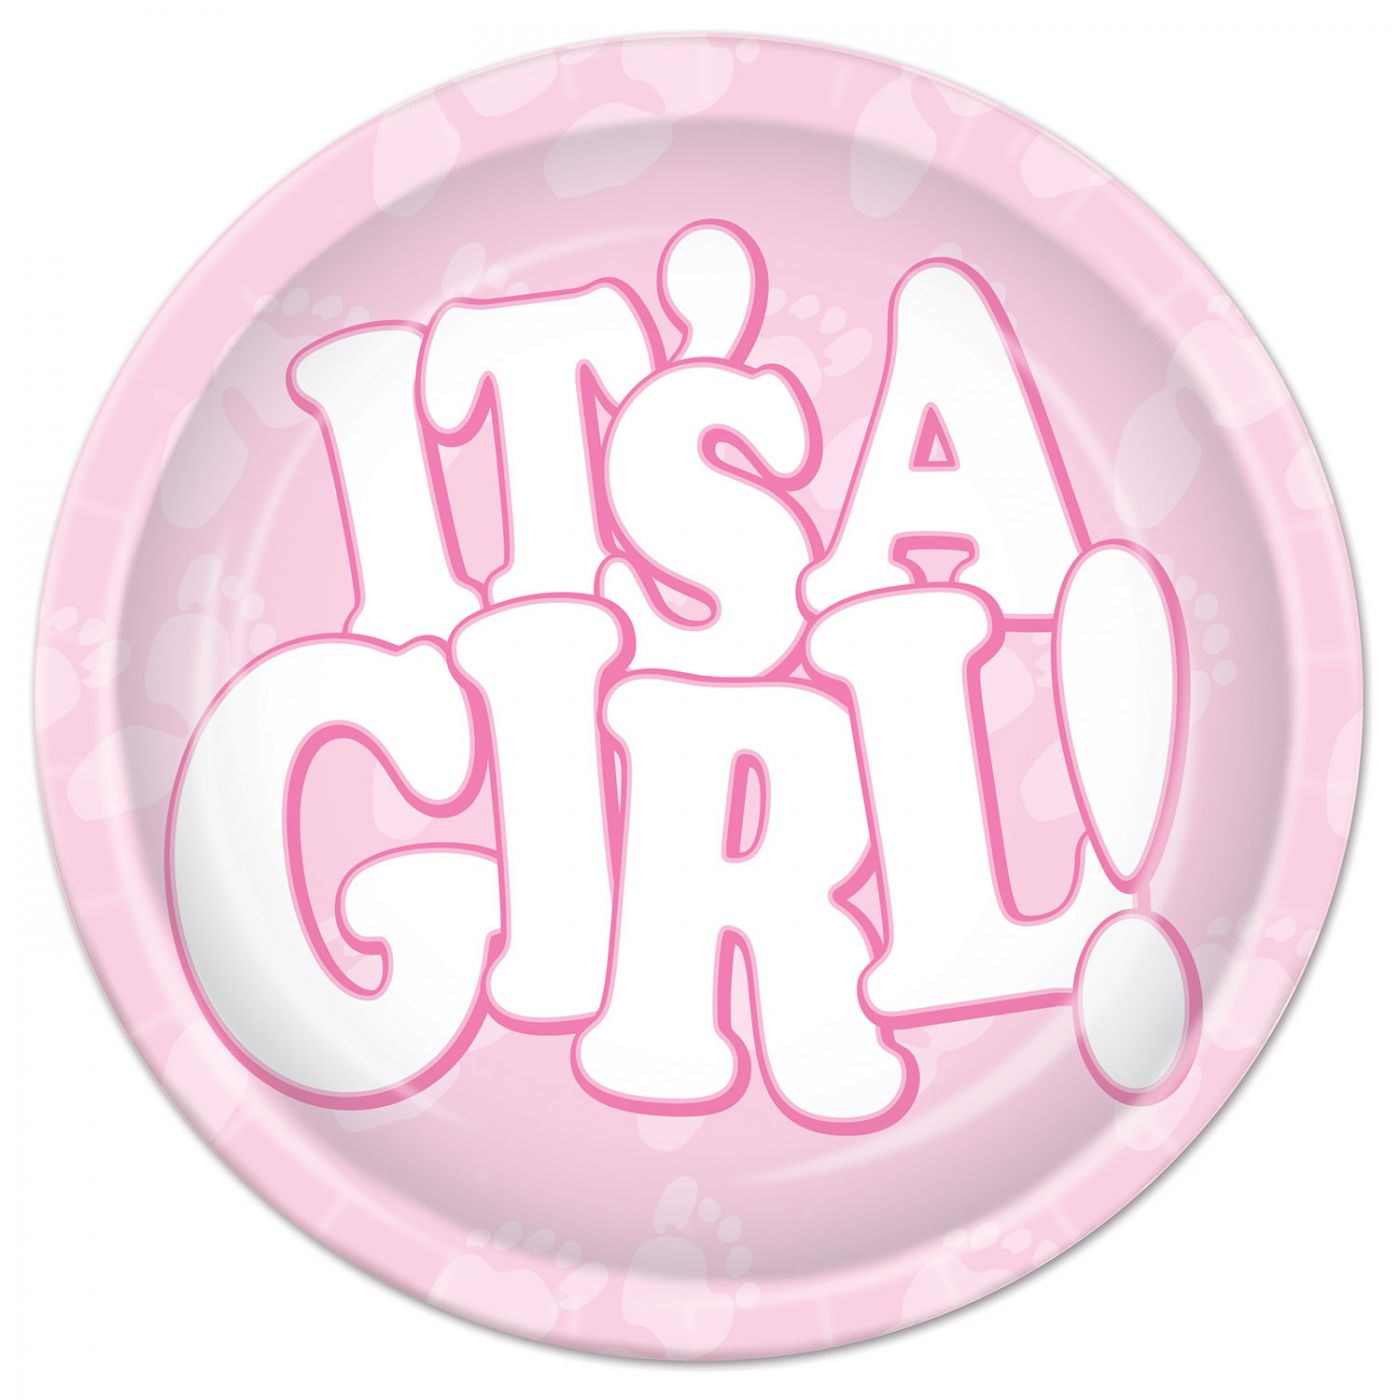 It's A Girl! Plates image